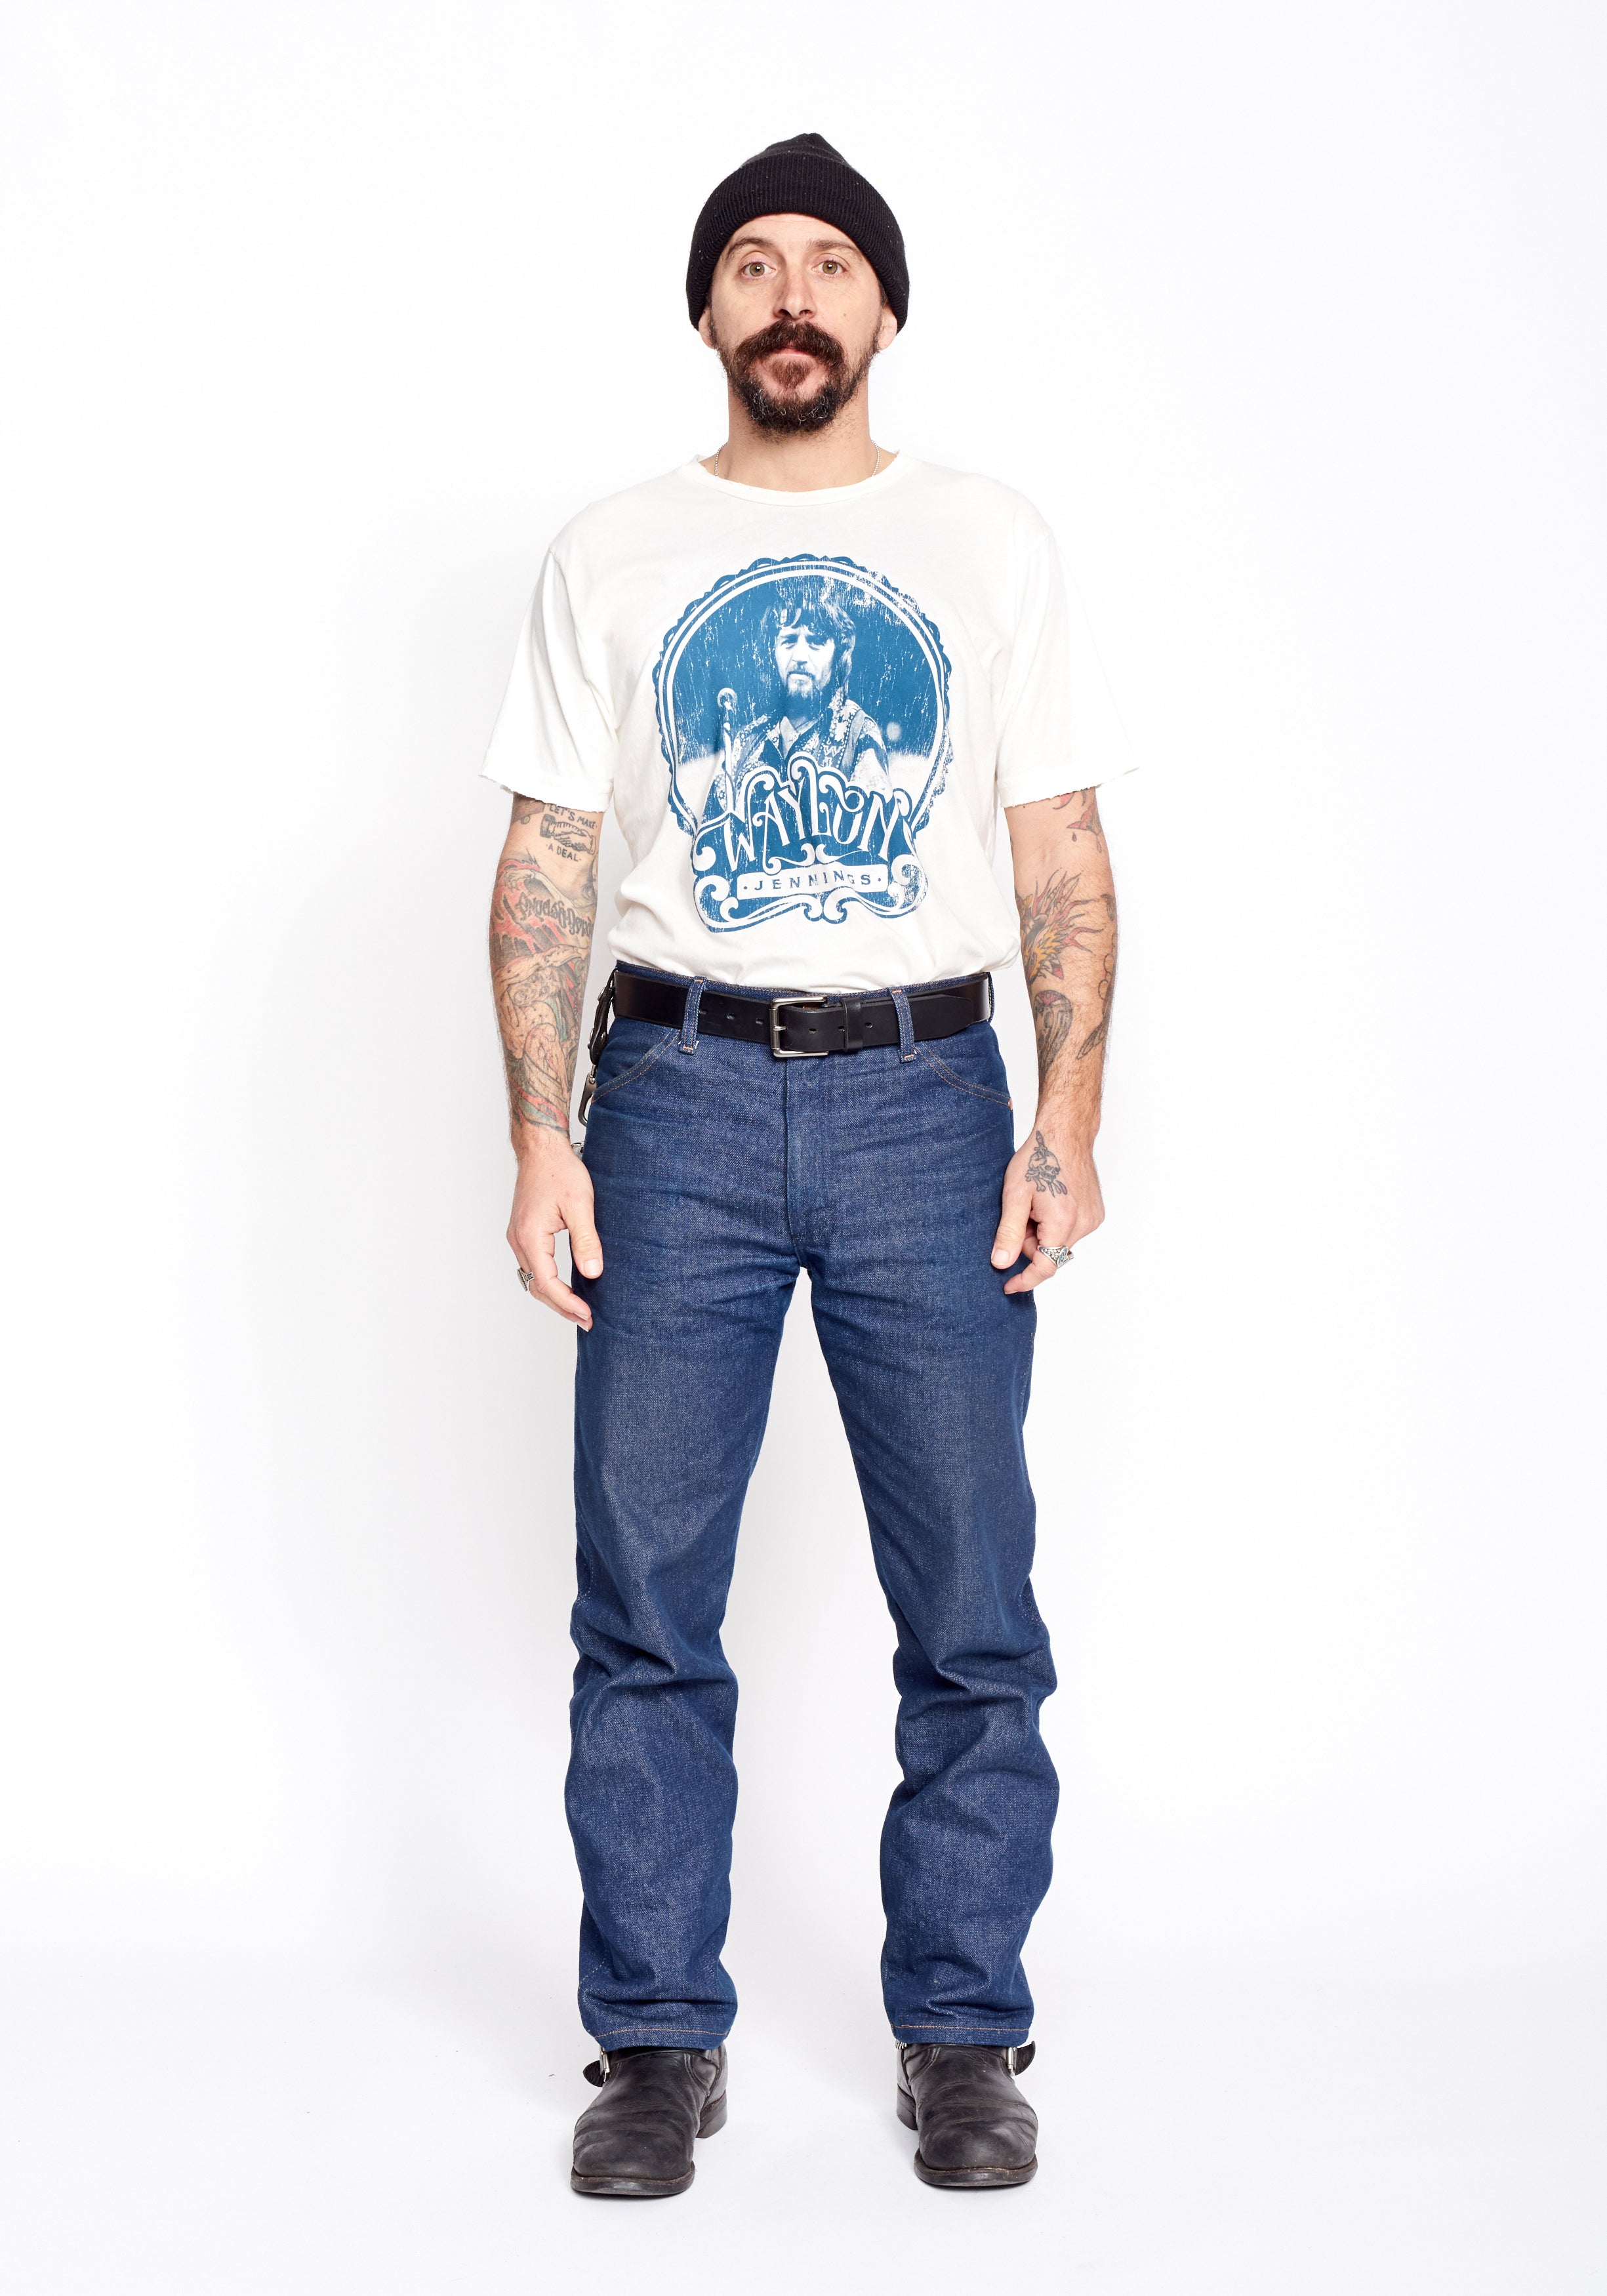 Waylon Photo Men's Crew - Blue Print